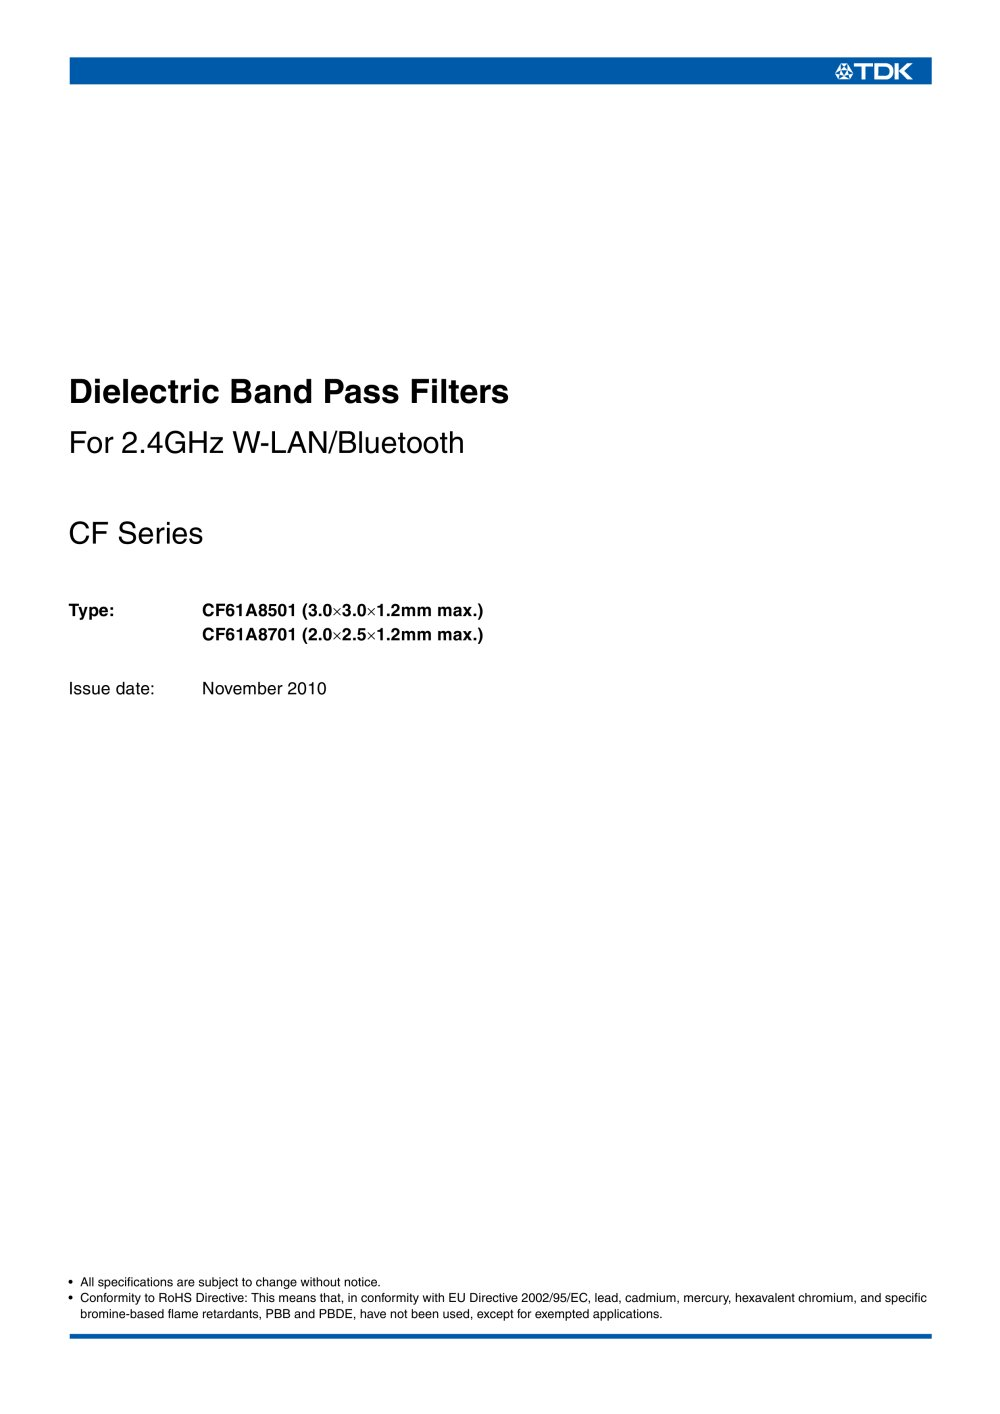 Dielectric Band Pass Filters Cf61a8501 Tdk Electronics Europe 1 5 Pages